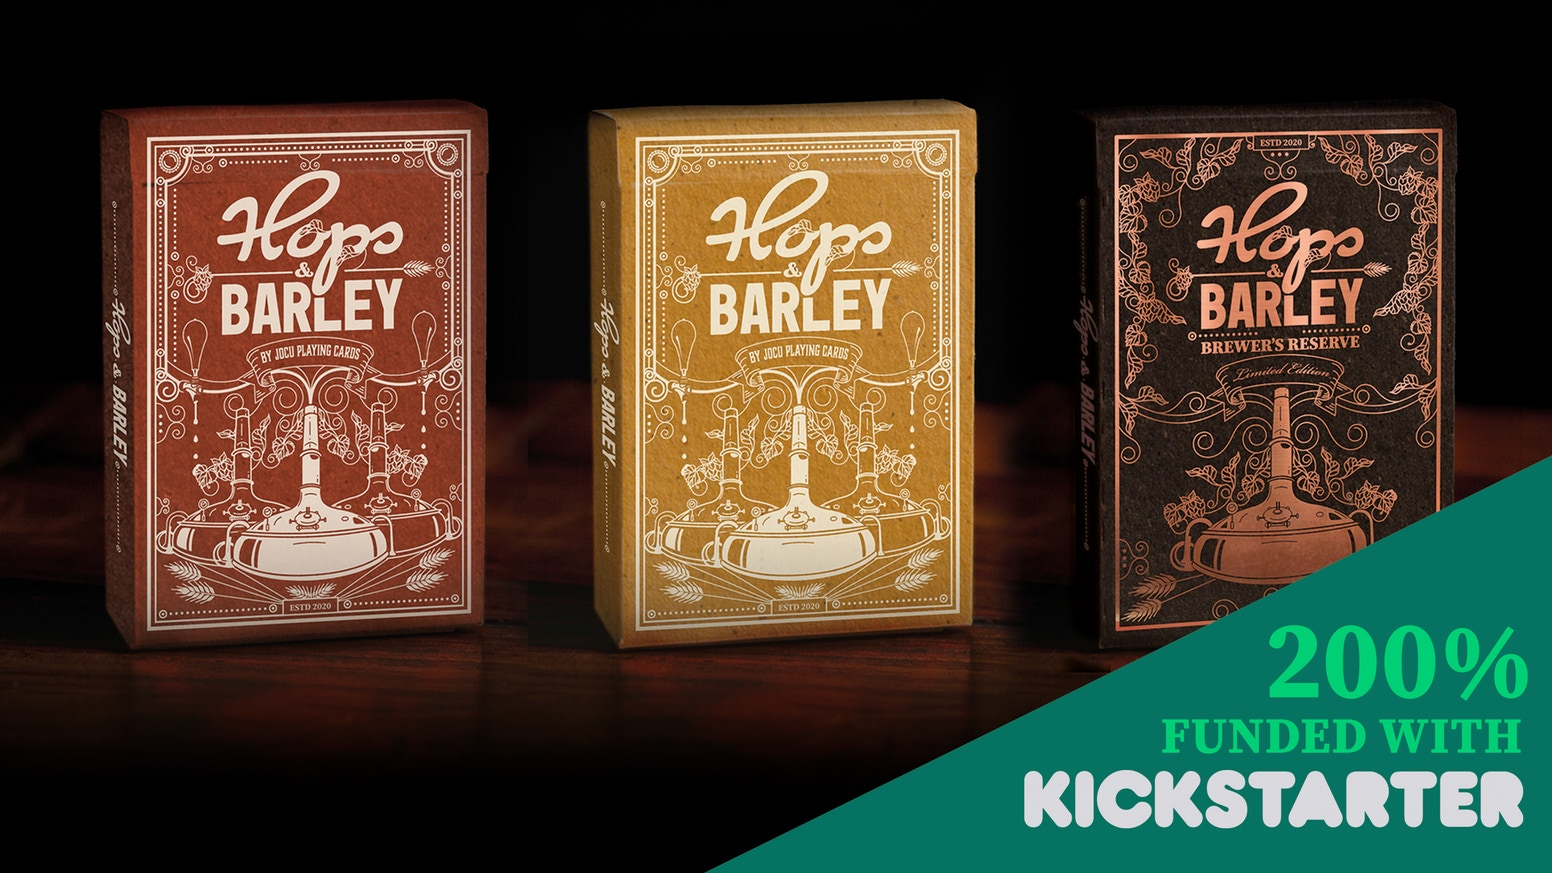 A custom deck of playing cards for lovers of fine ales, craft beers and best bitters.